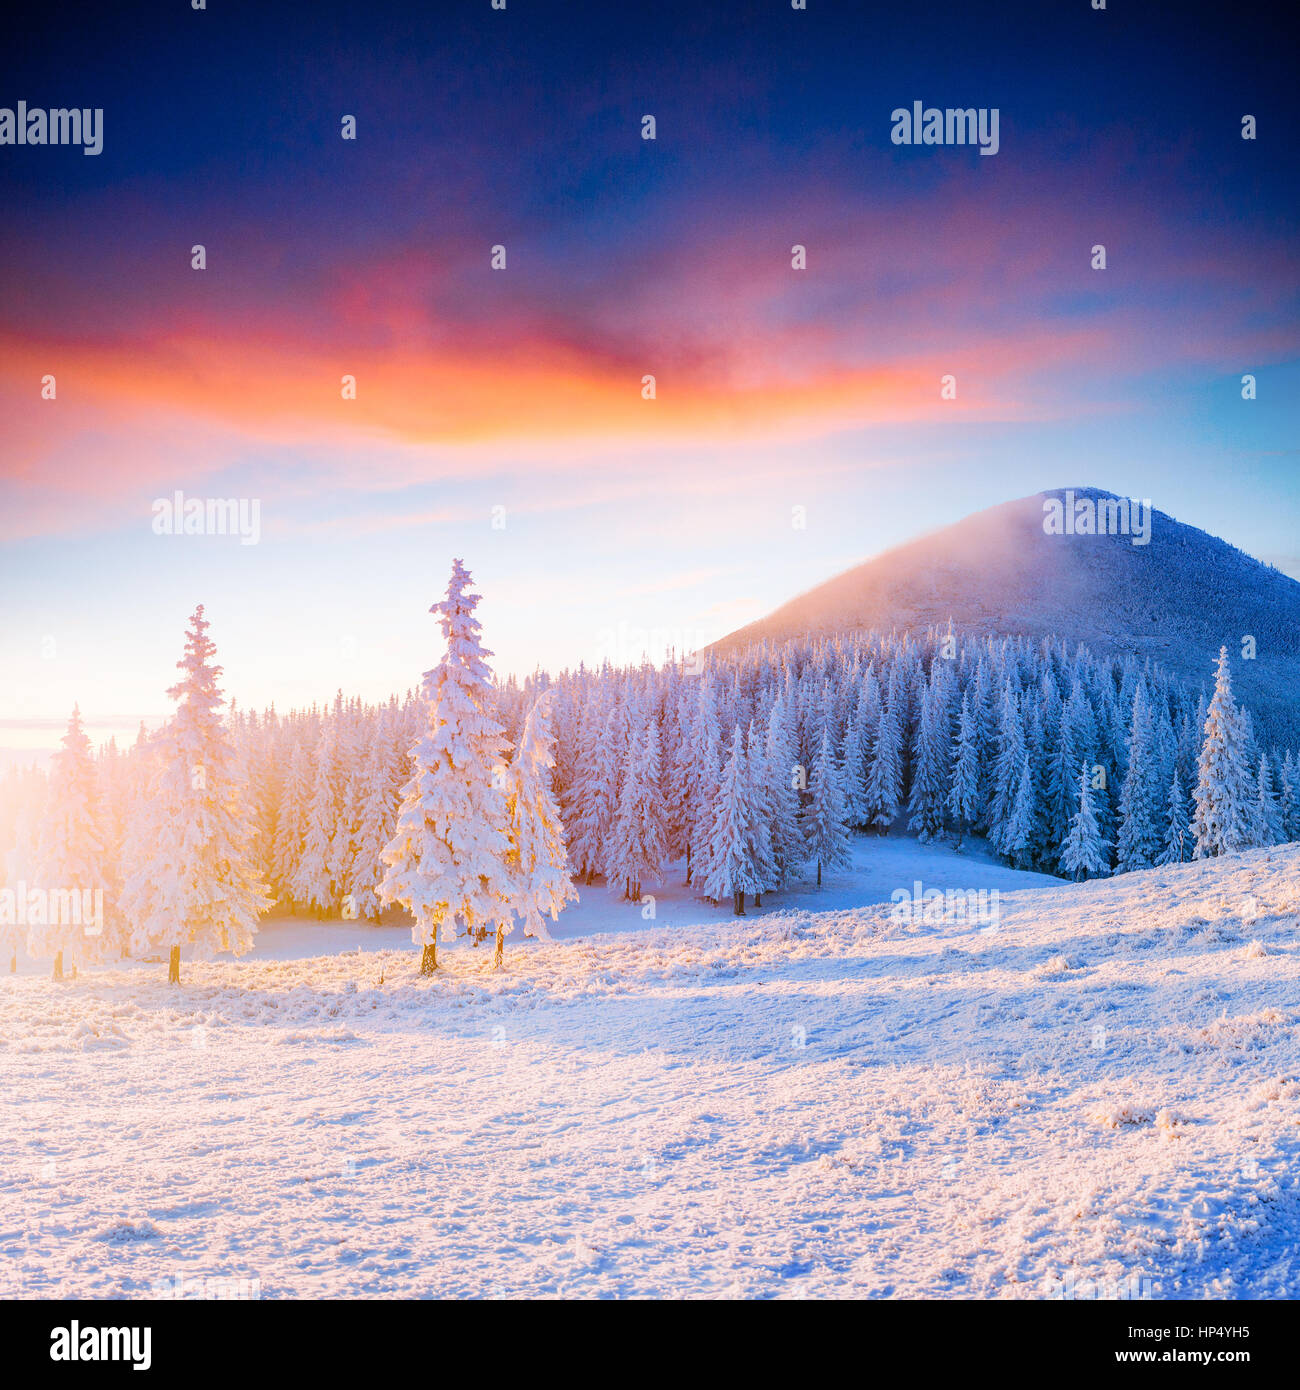 Colorful sunset over the mountain ranges in the national park - Stock Image